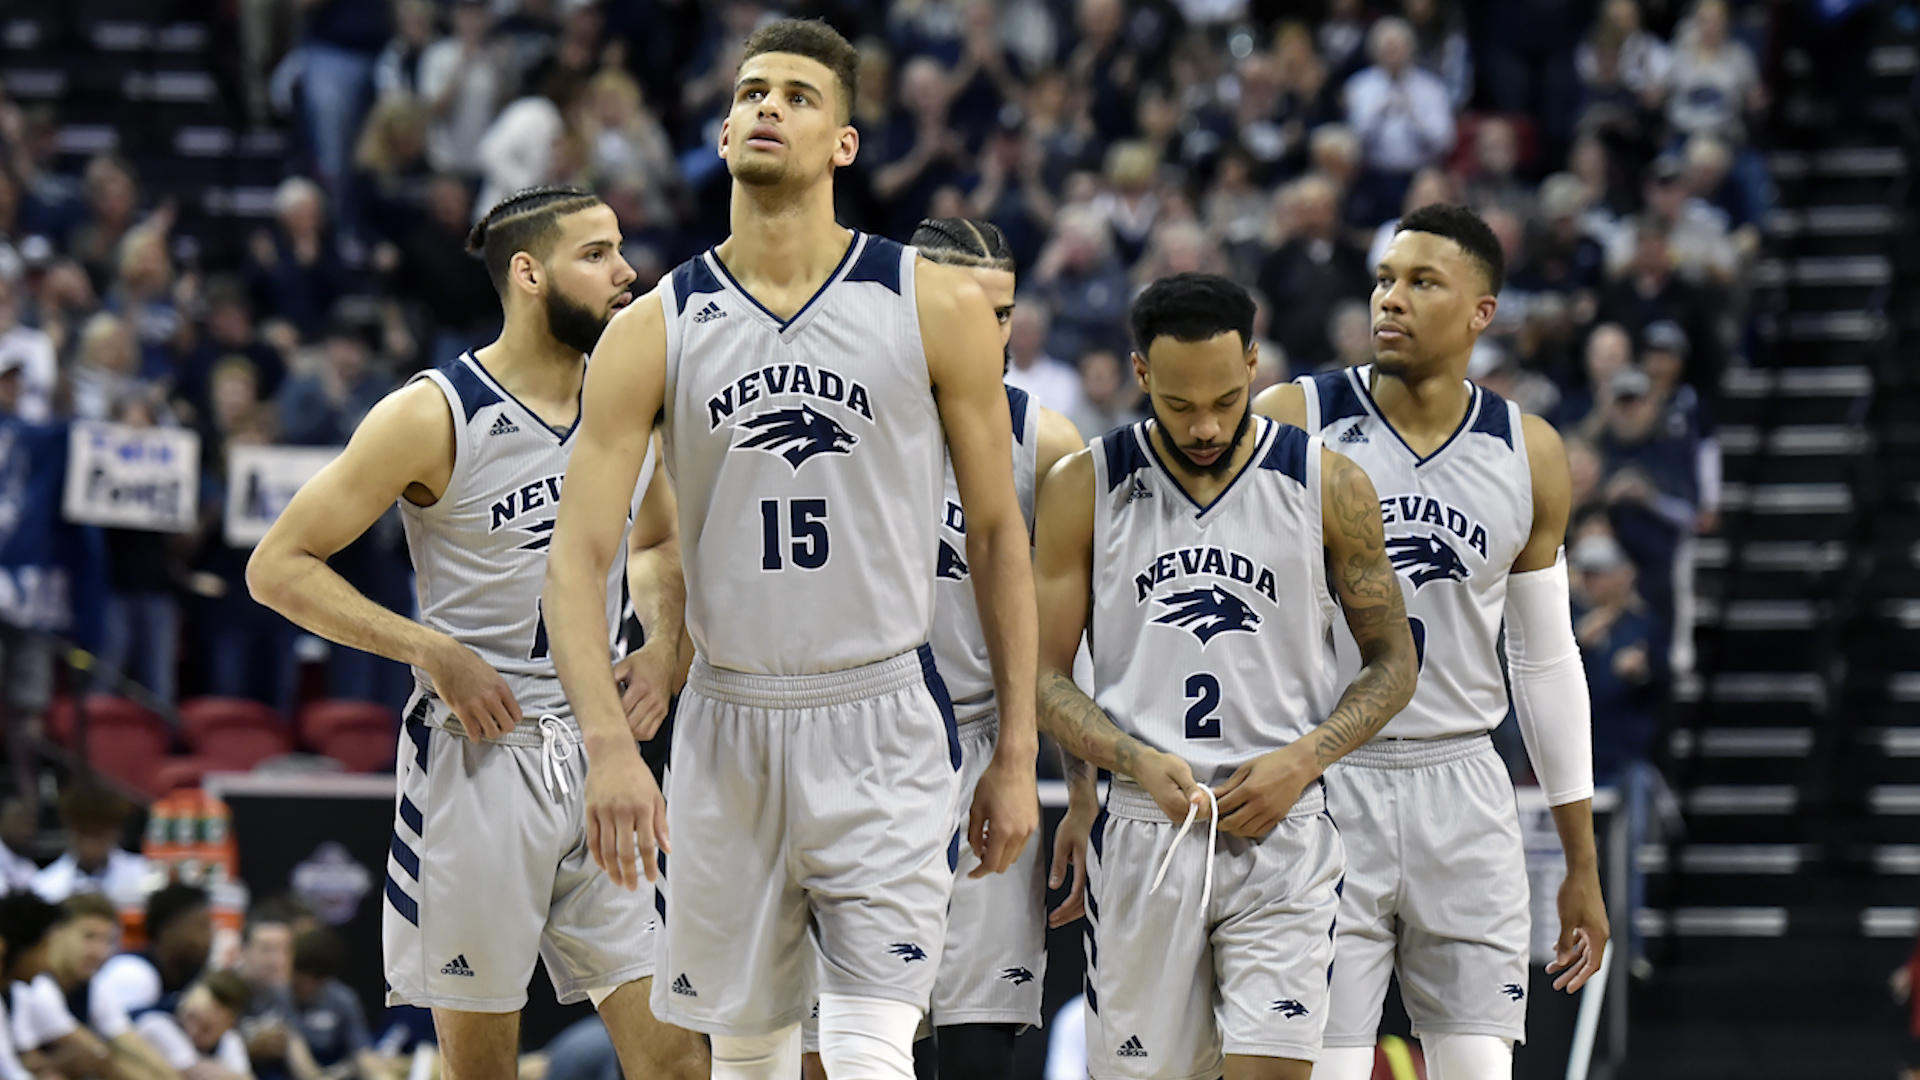 2019 NCAA Tournament TV schedule: March Madness bracket, tip times for first round, locations